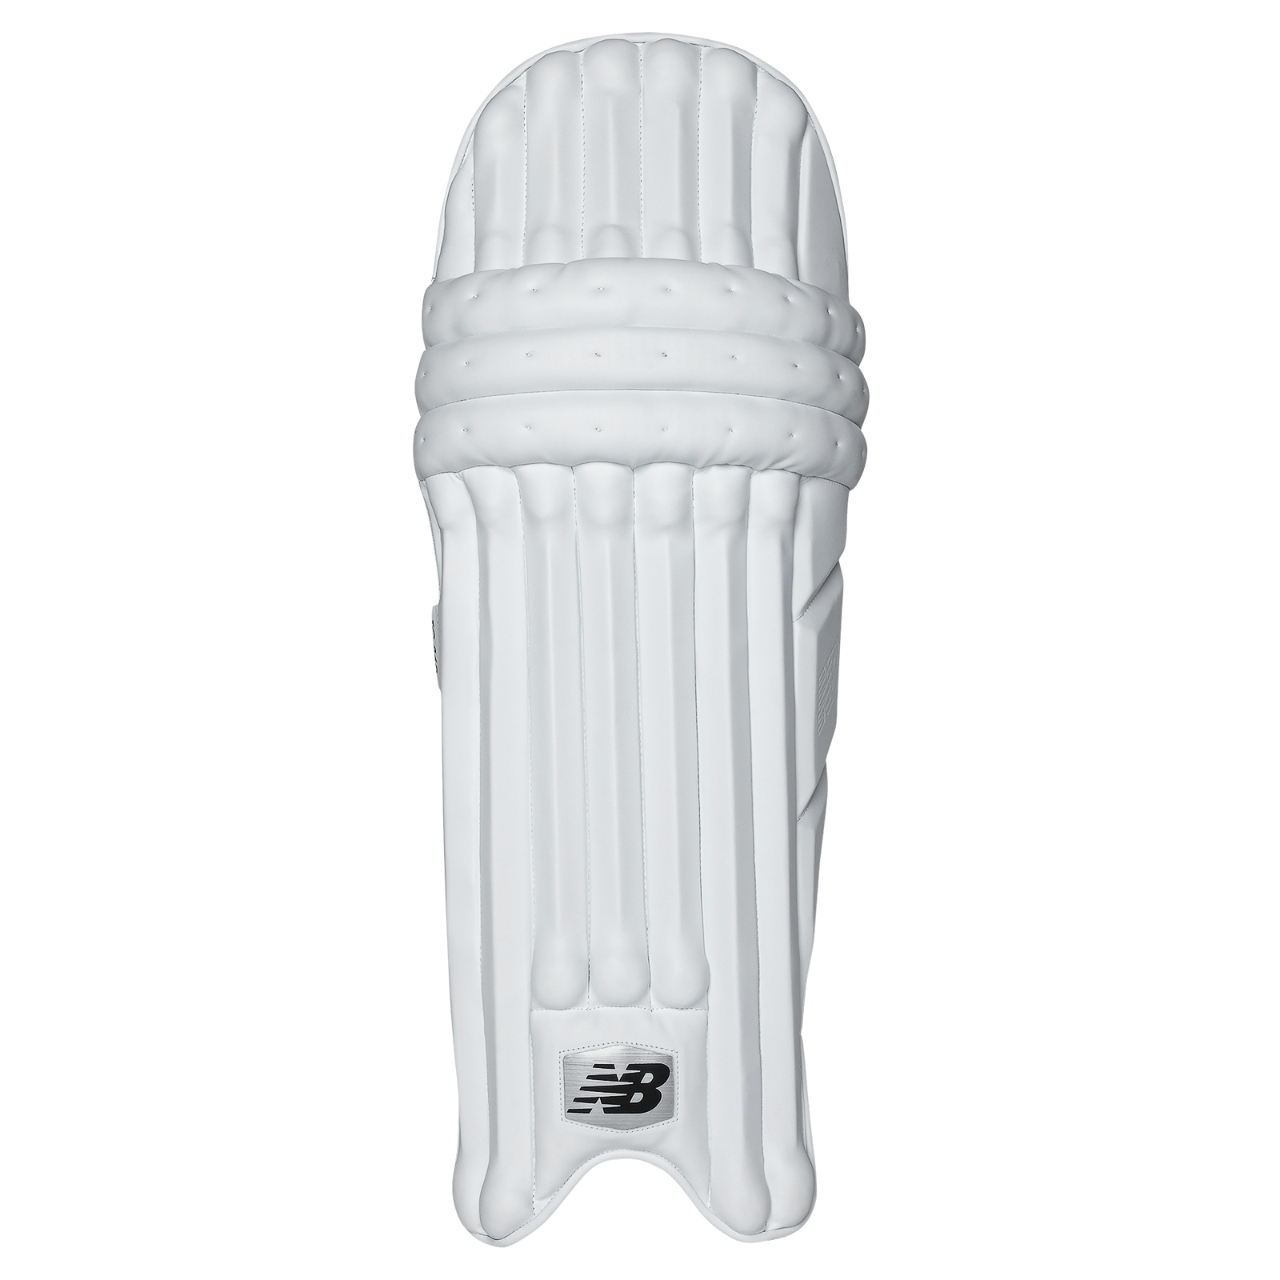 2021 New Balance TC 860 Batting Pads